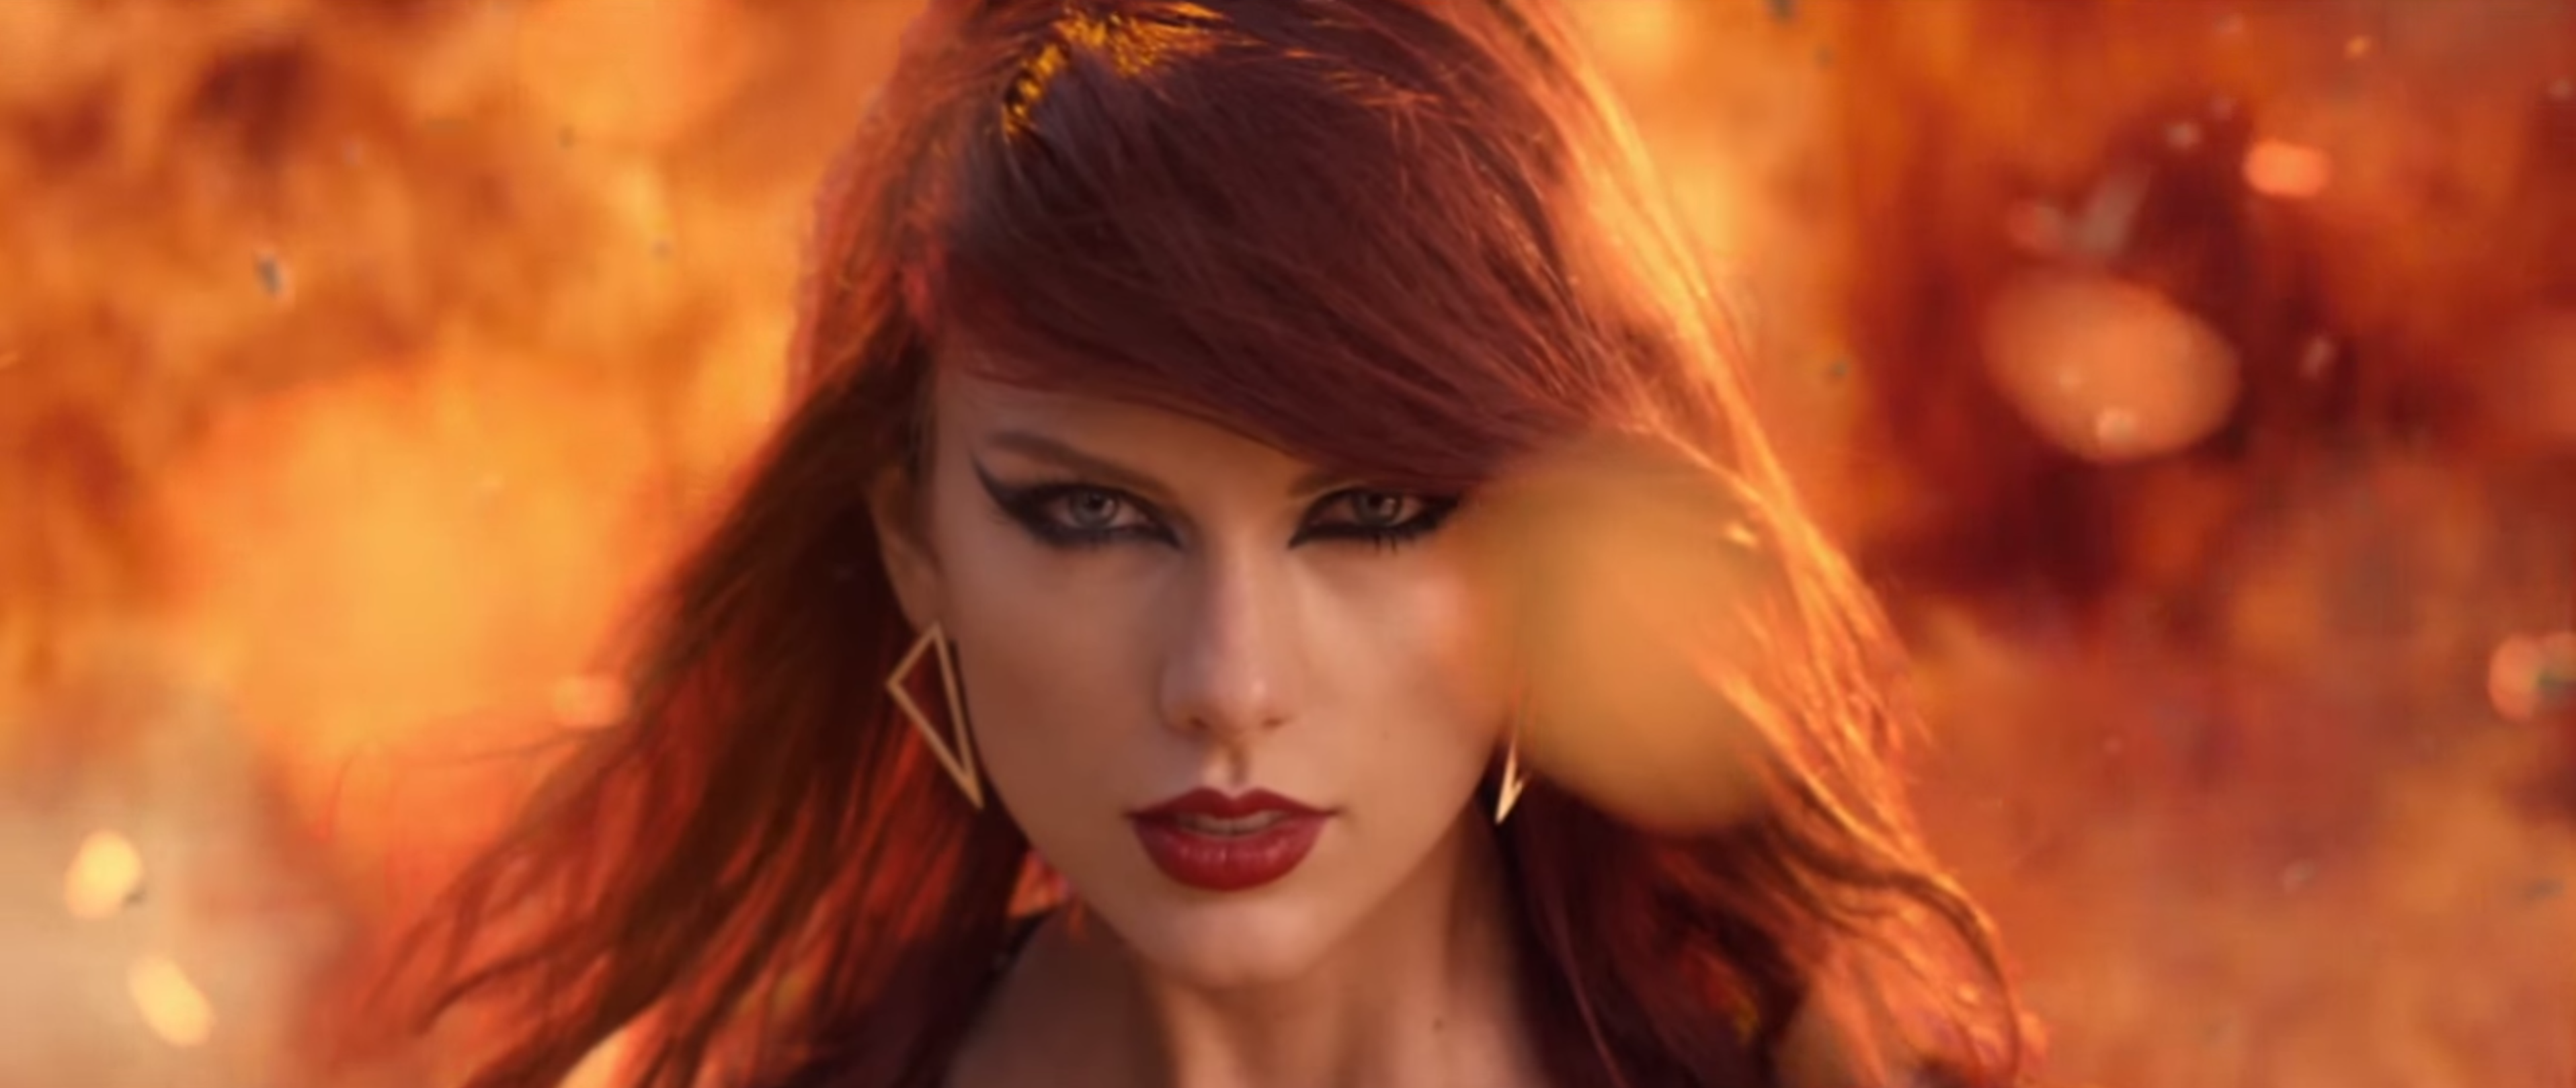 Is Taylor Swift's Dad Behind Her Unfair Contract for Photographers? - Resource